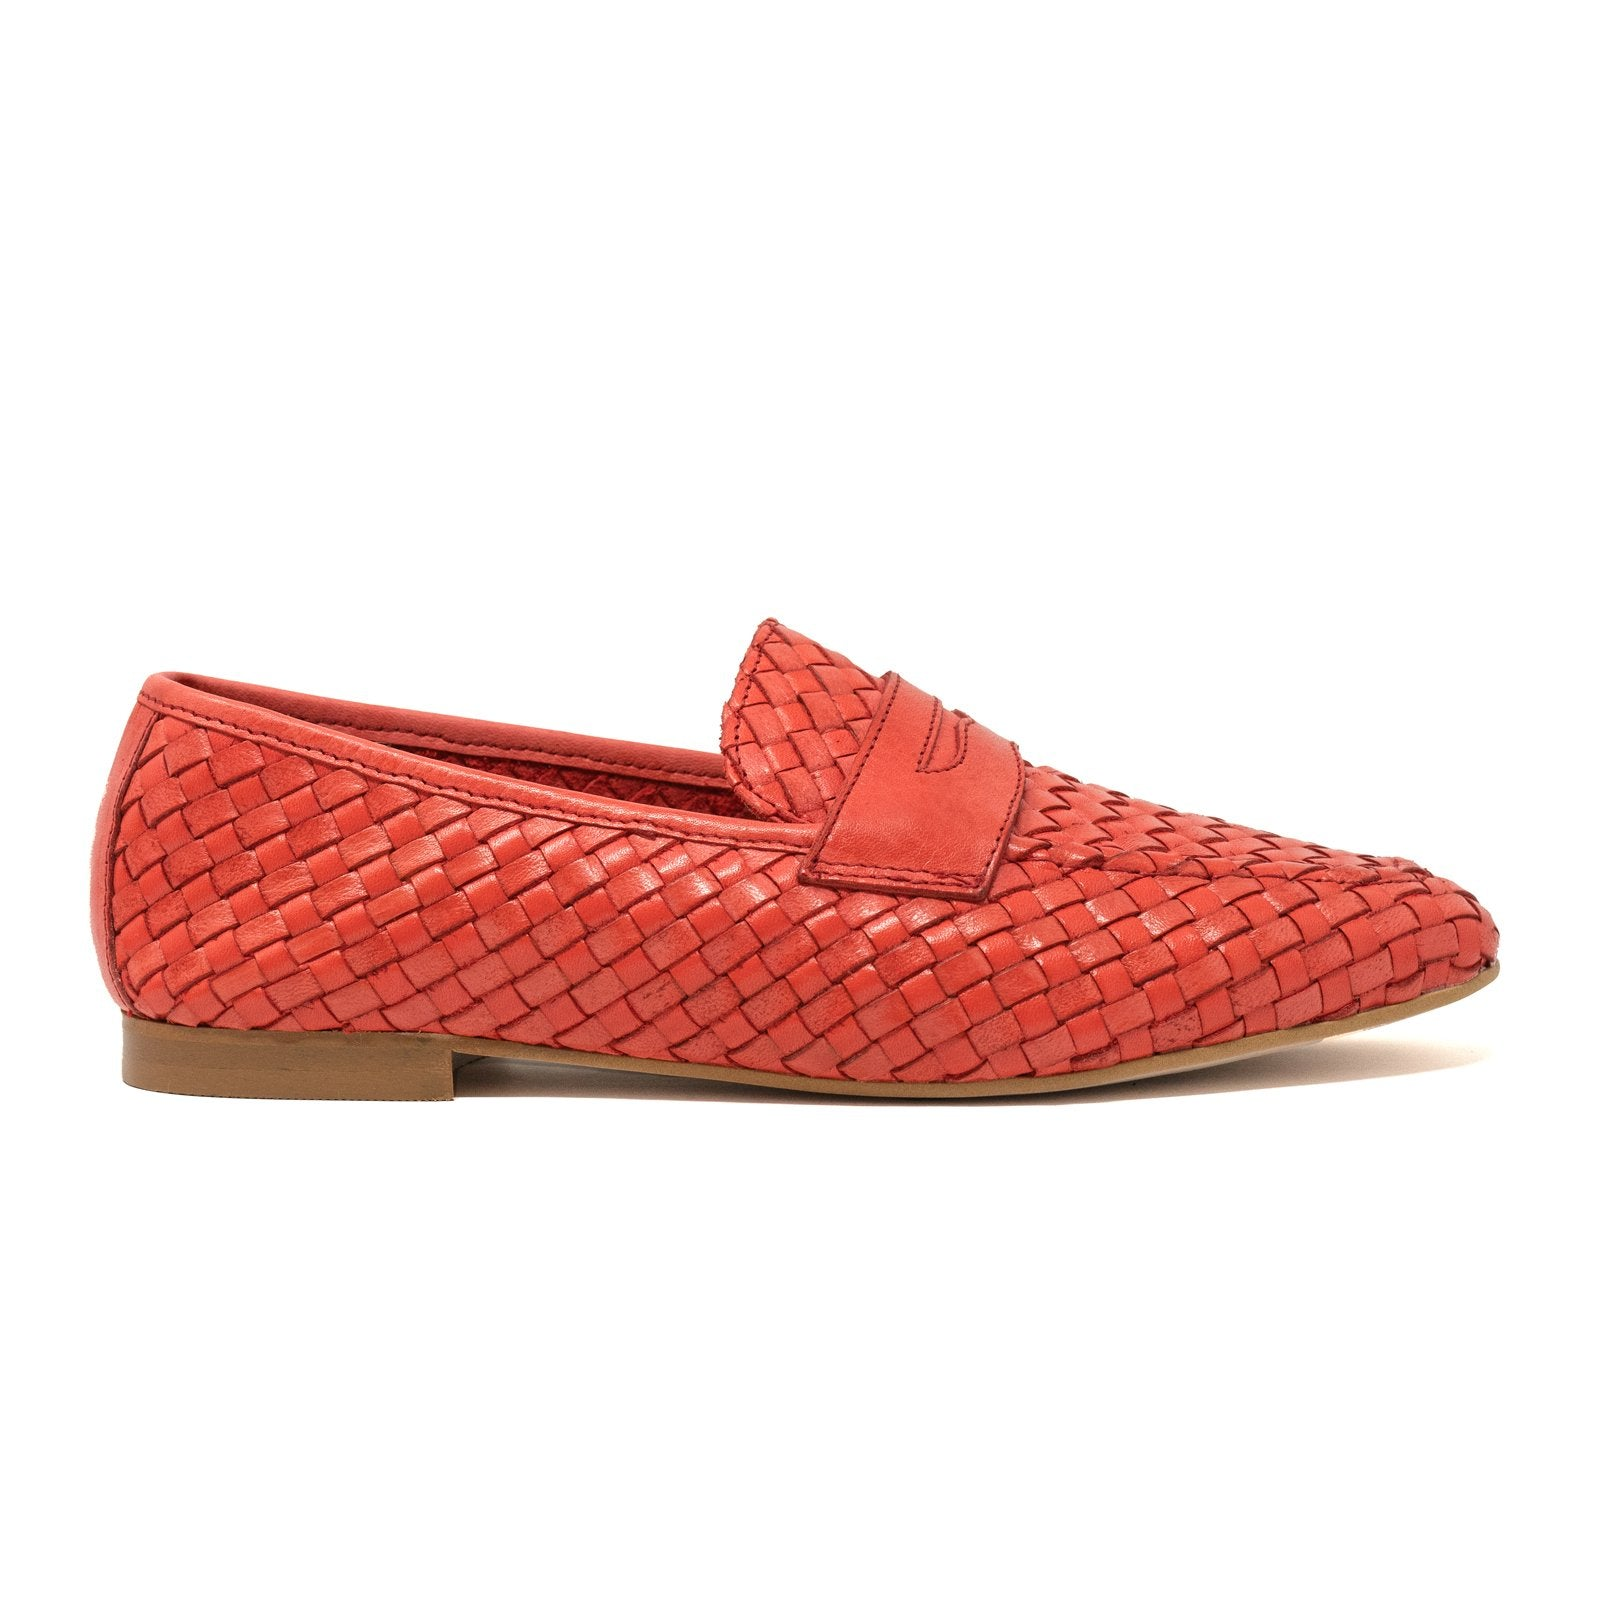 Women's Leather Loafers in Intrecciato Red - Jennifer Tattanelli